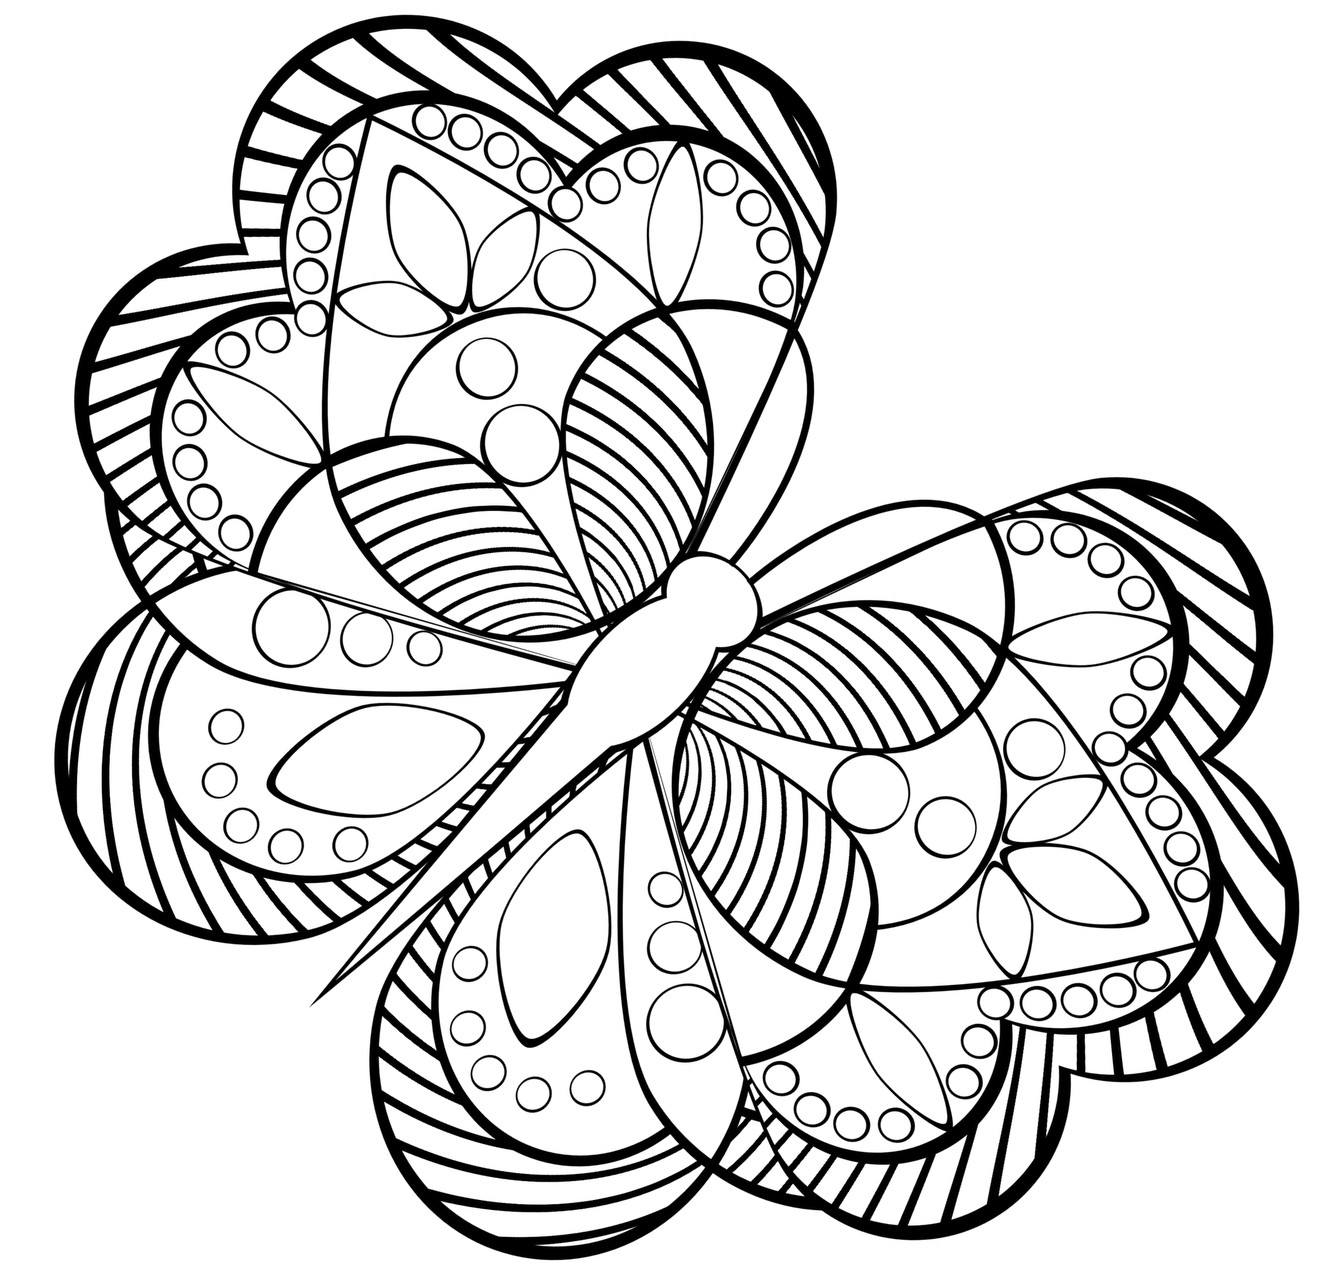 Best ideas about Free Printable Coloring Sheets For Adults . Save or Pin Free Coloring Pages For Adults To Print Special Image 12 Now.